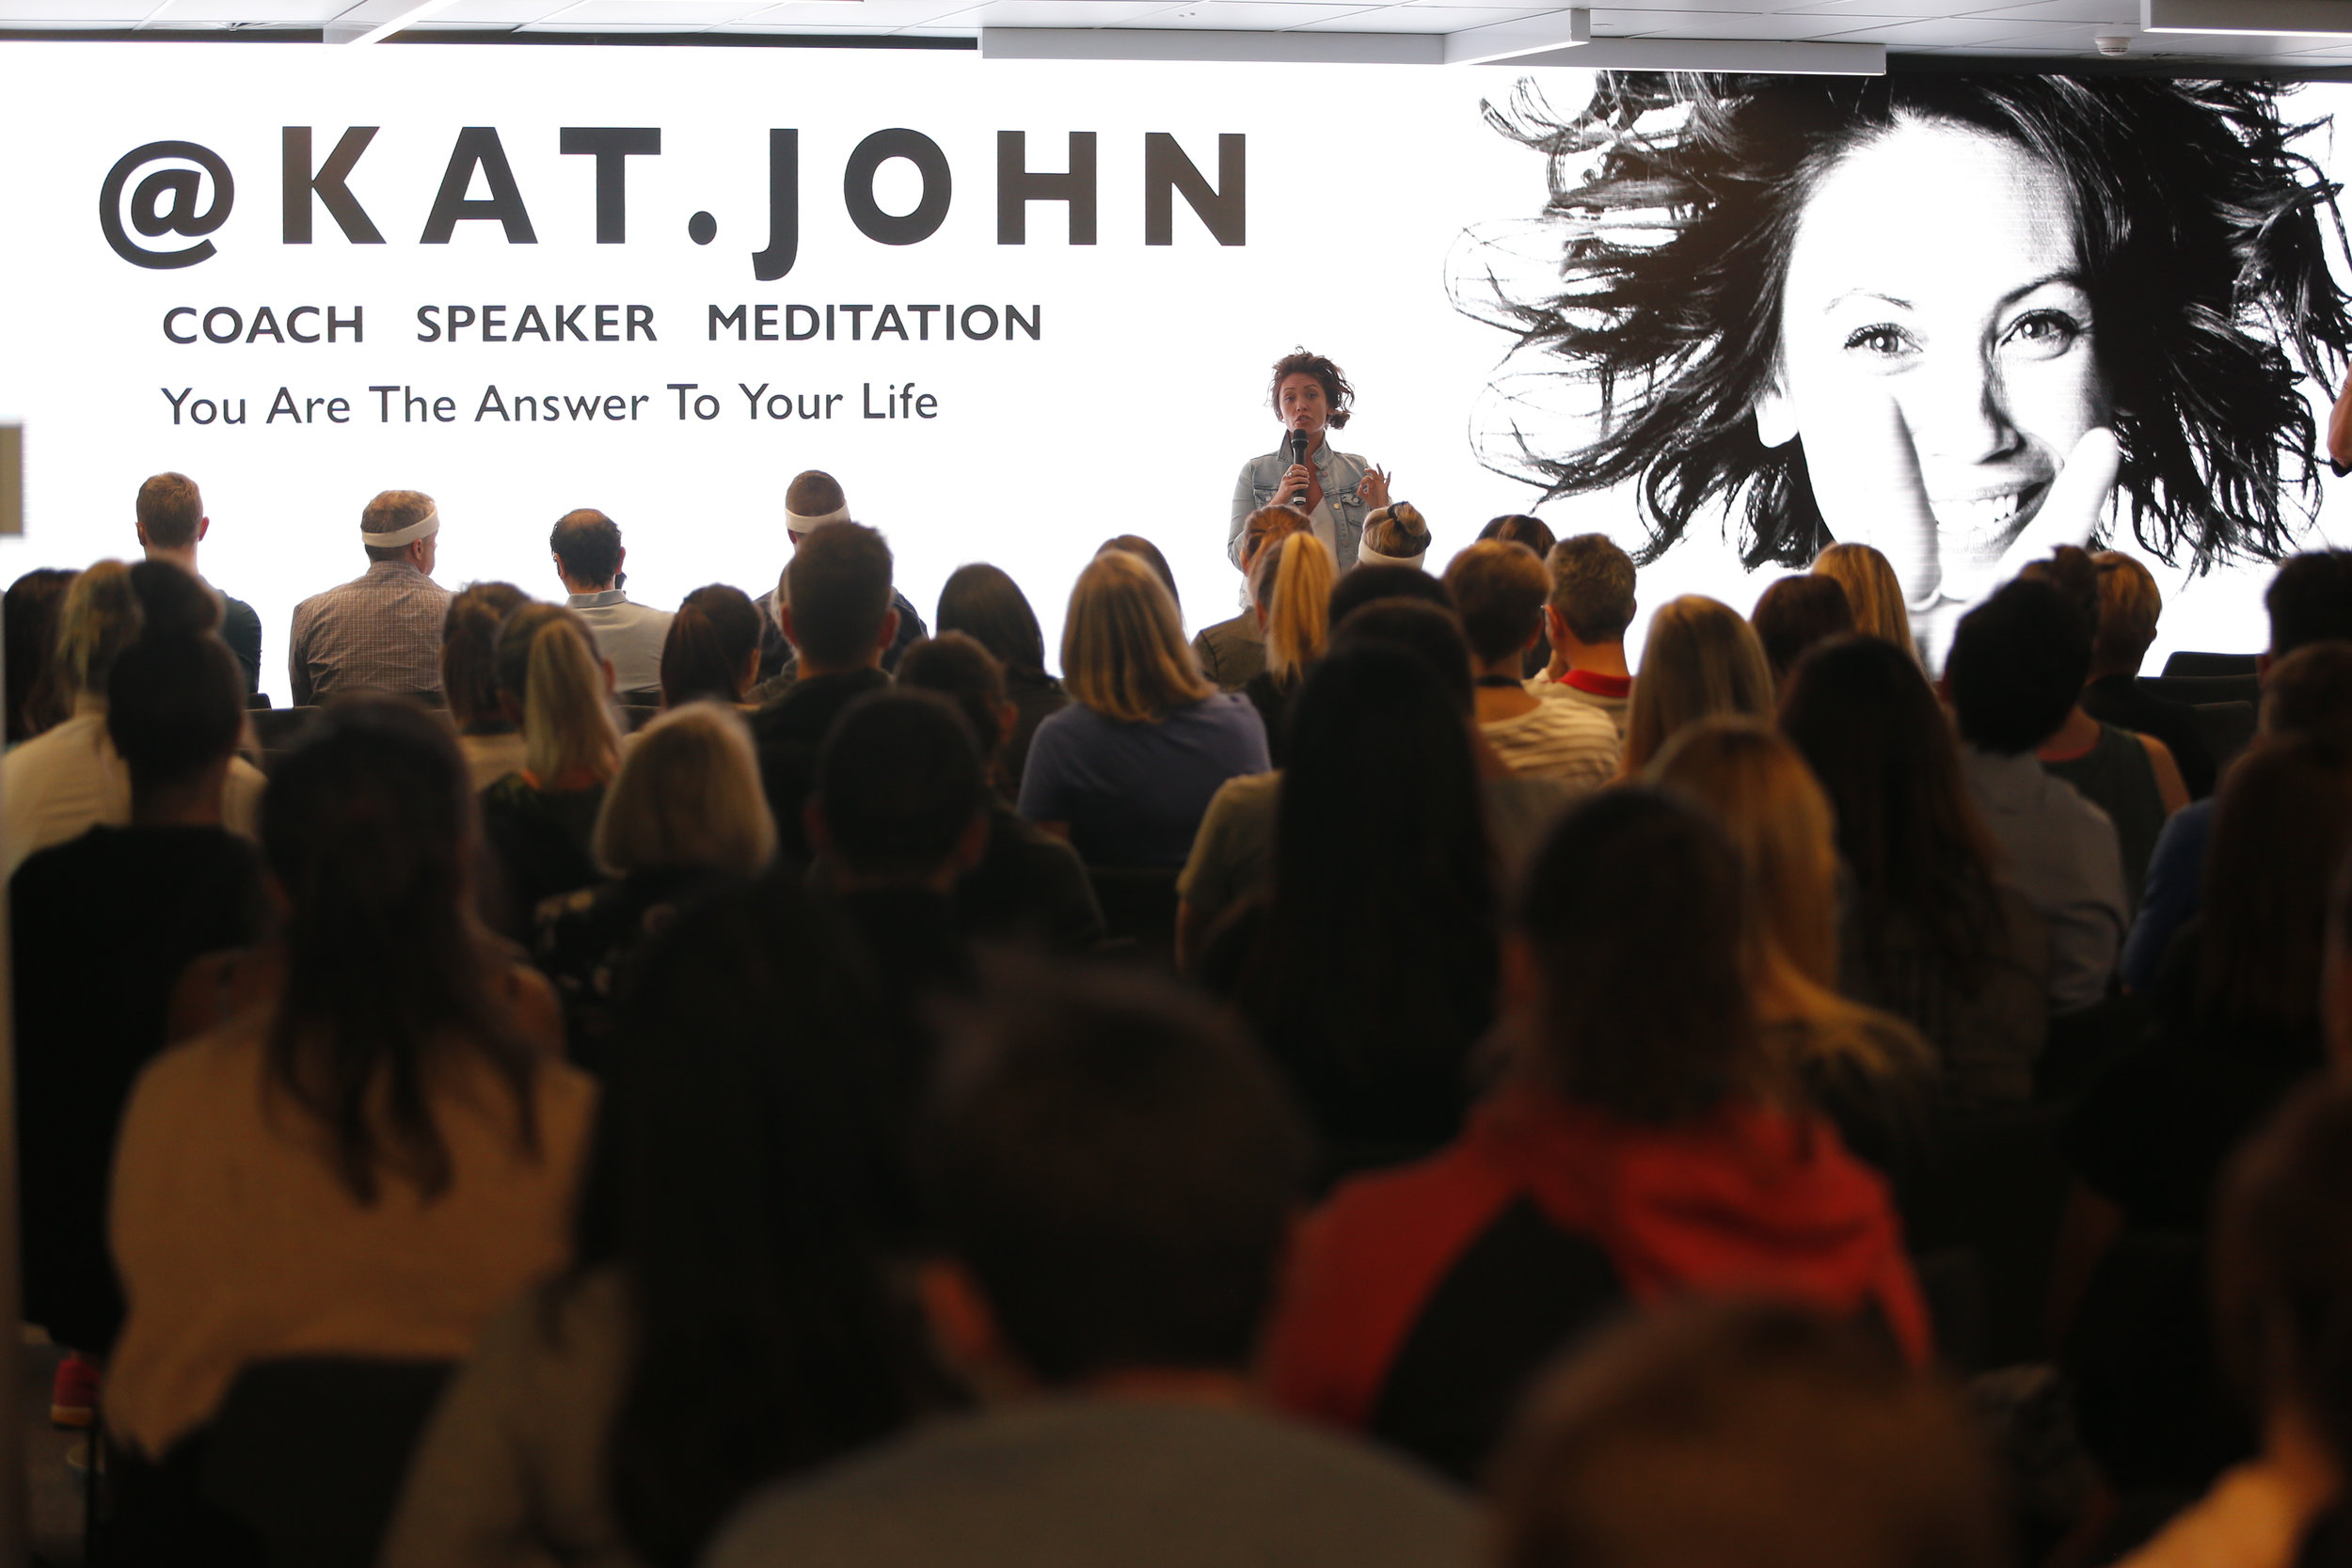 KAT JOHN — BE THE CHANGE - As a leader in the health and wellness industry, I give people hope that they too can change the trajectory of their life when they look inside for the answers they seek.More importantly, I provide powerful tools and life hacks to access these answers and make empowering changes that lead to more enjoyable and fulfilling lives.